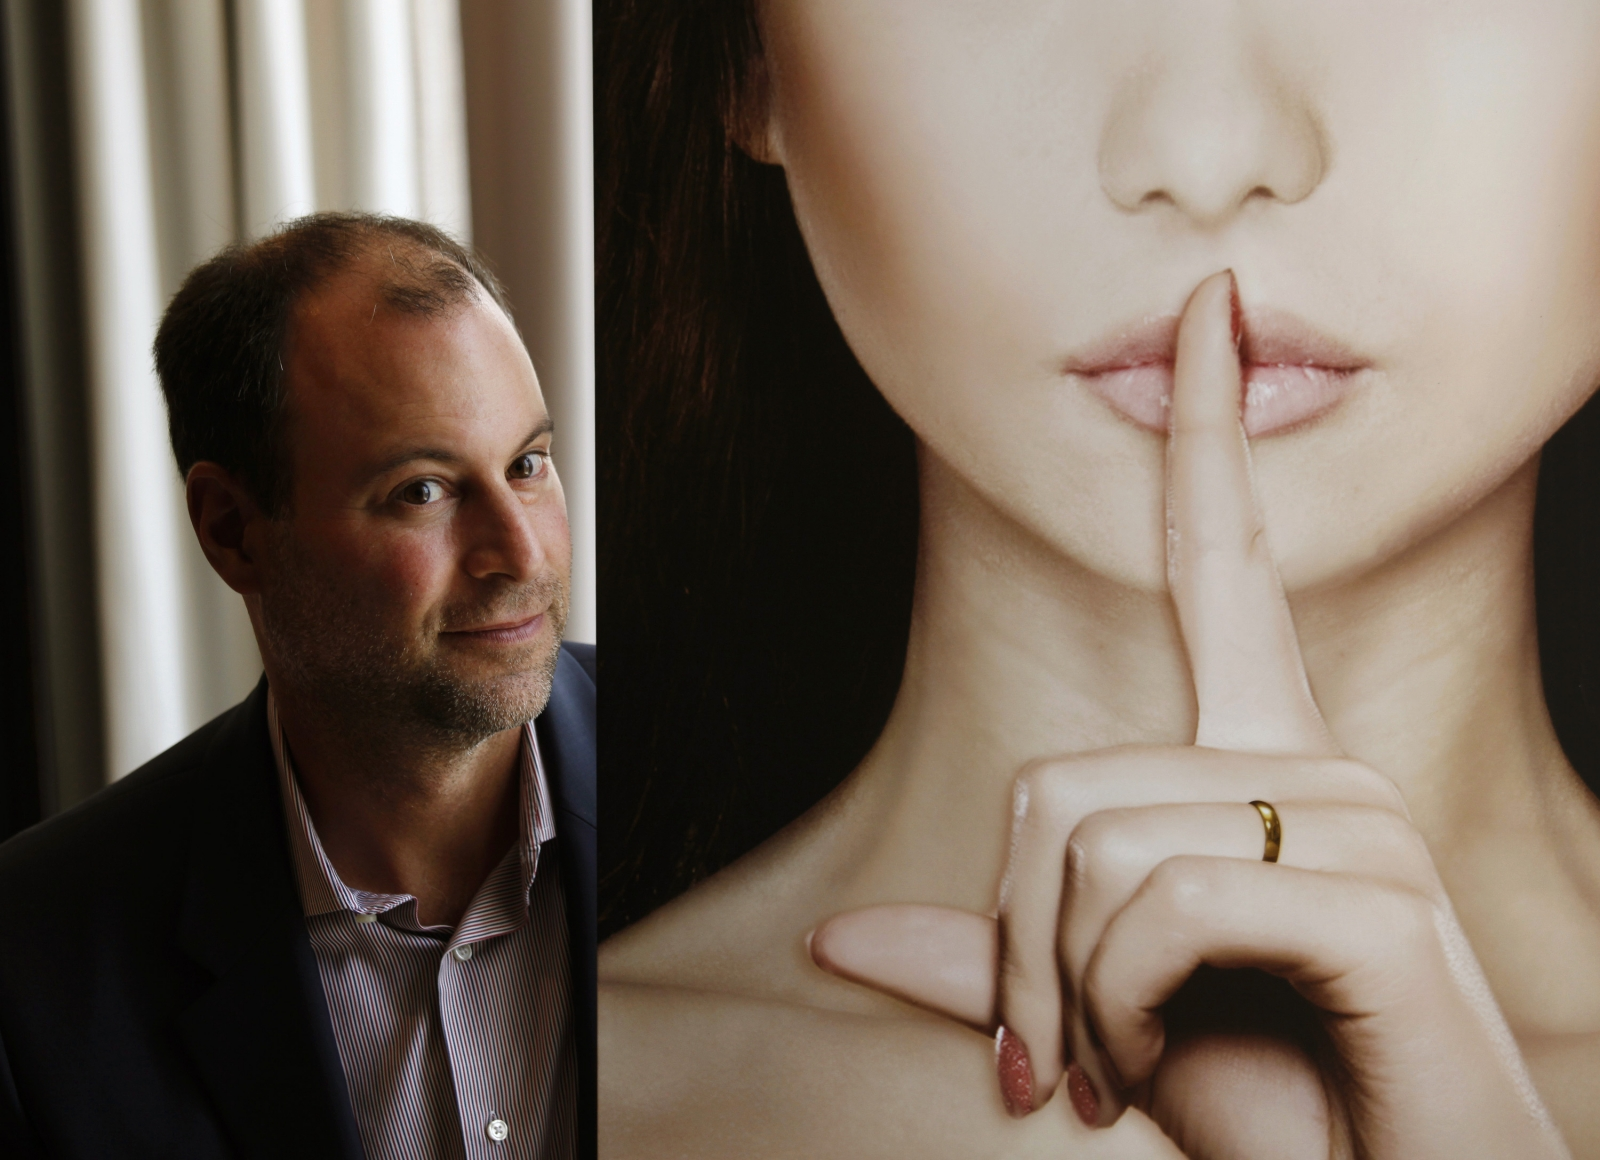 affair dating site hacked Check if you were exposed in the ashley madison leak.